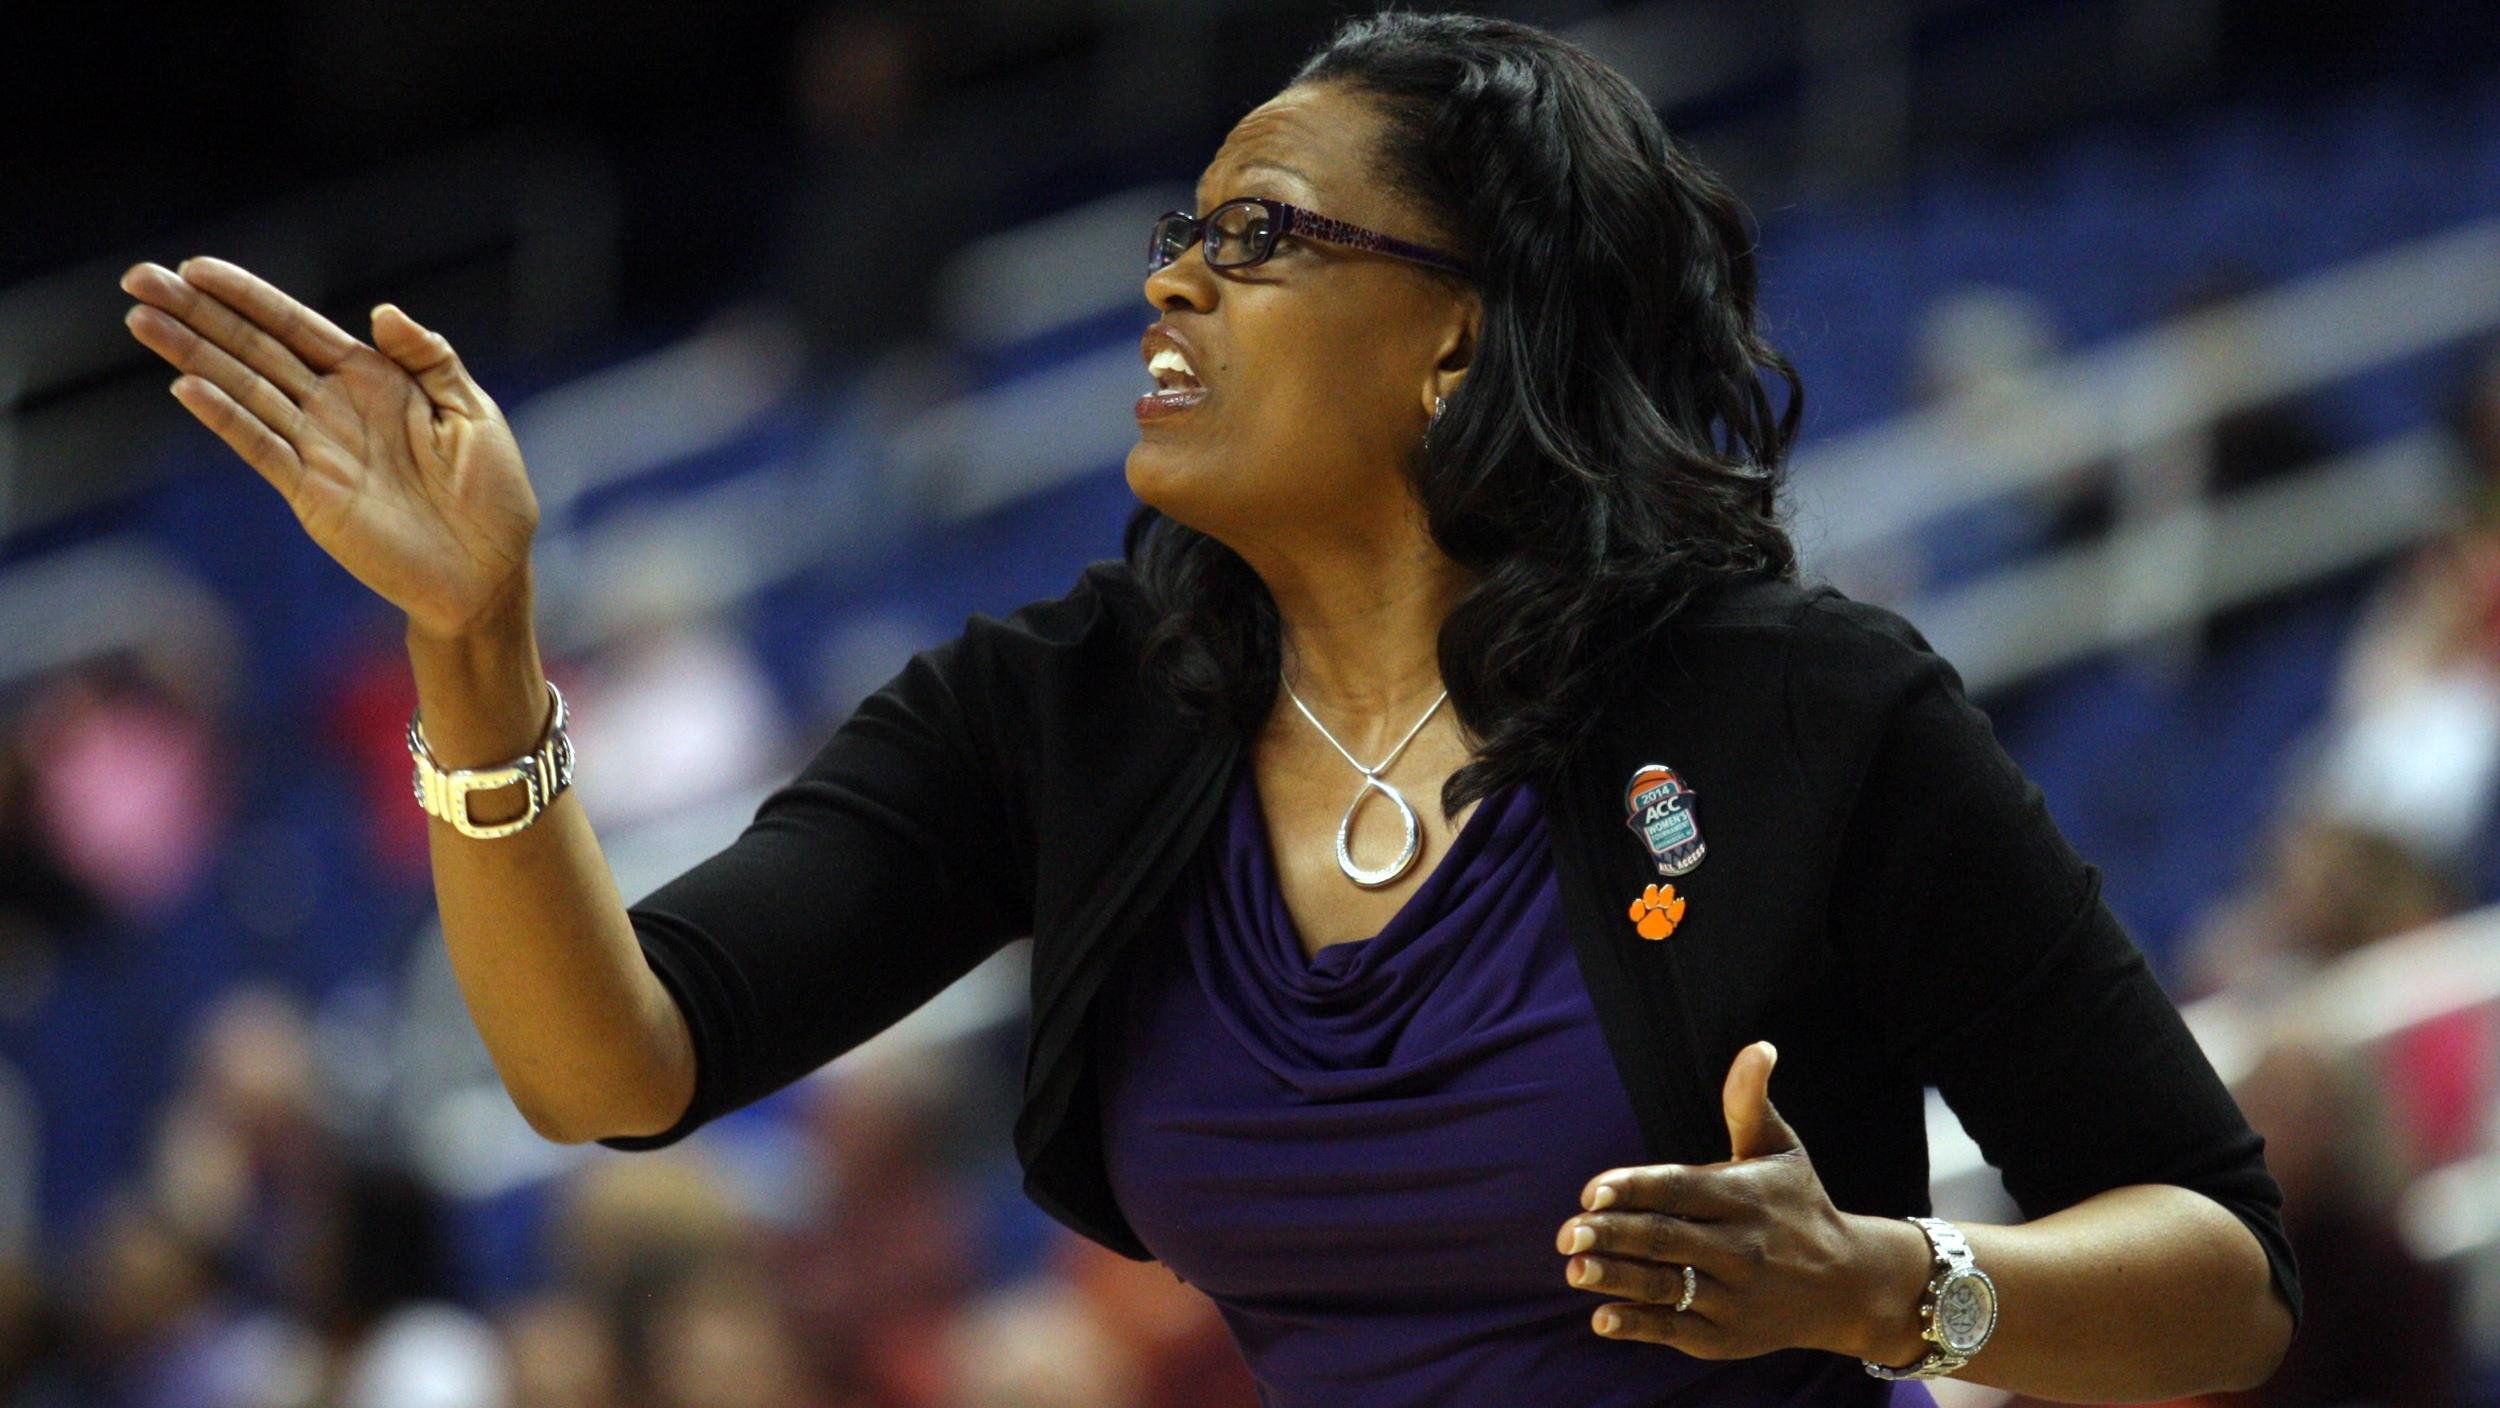 EXCLUSIVE: Smith Excited for Future of Lady Tiger Program